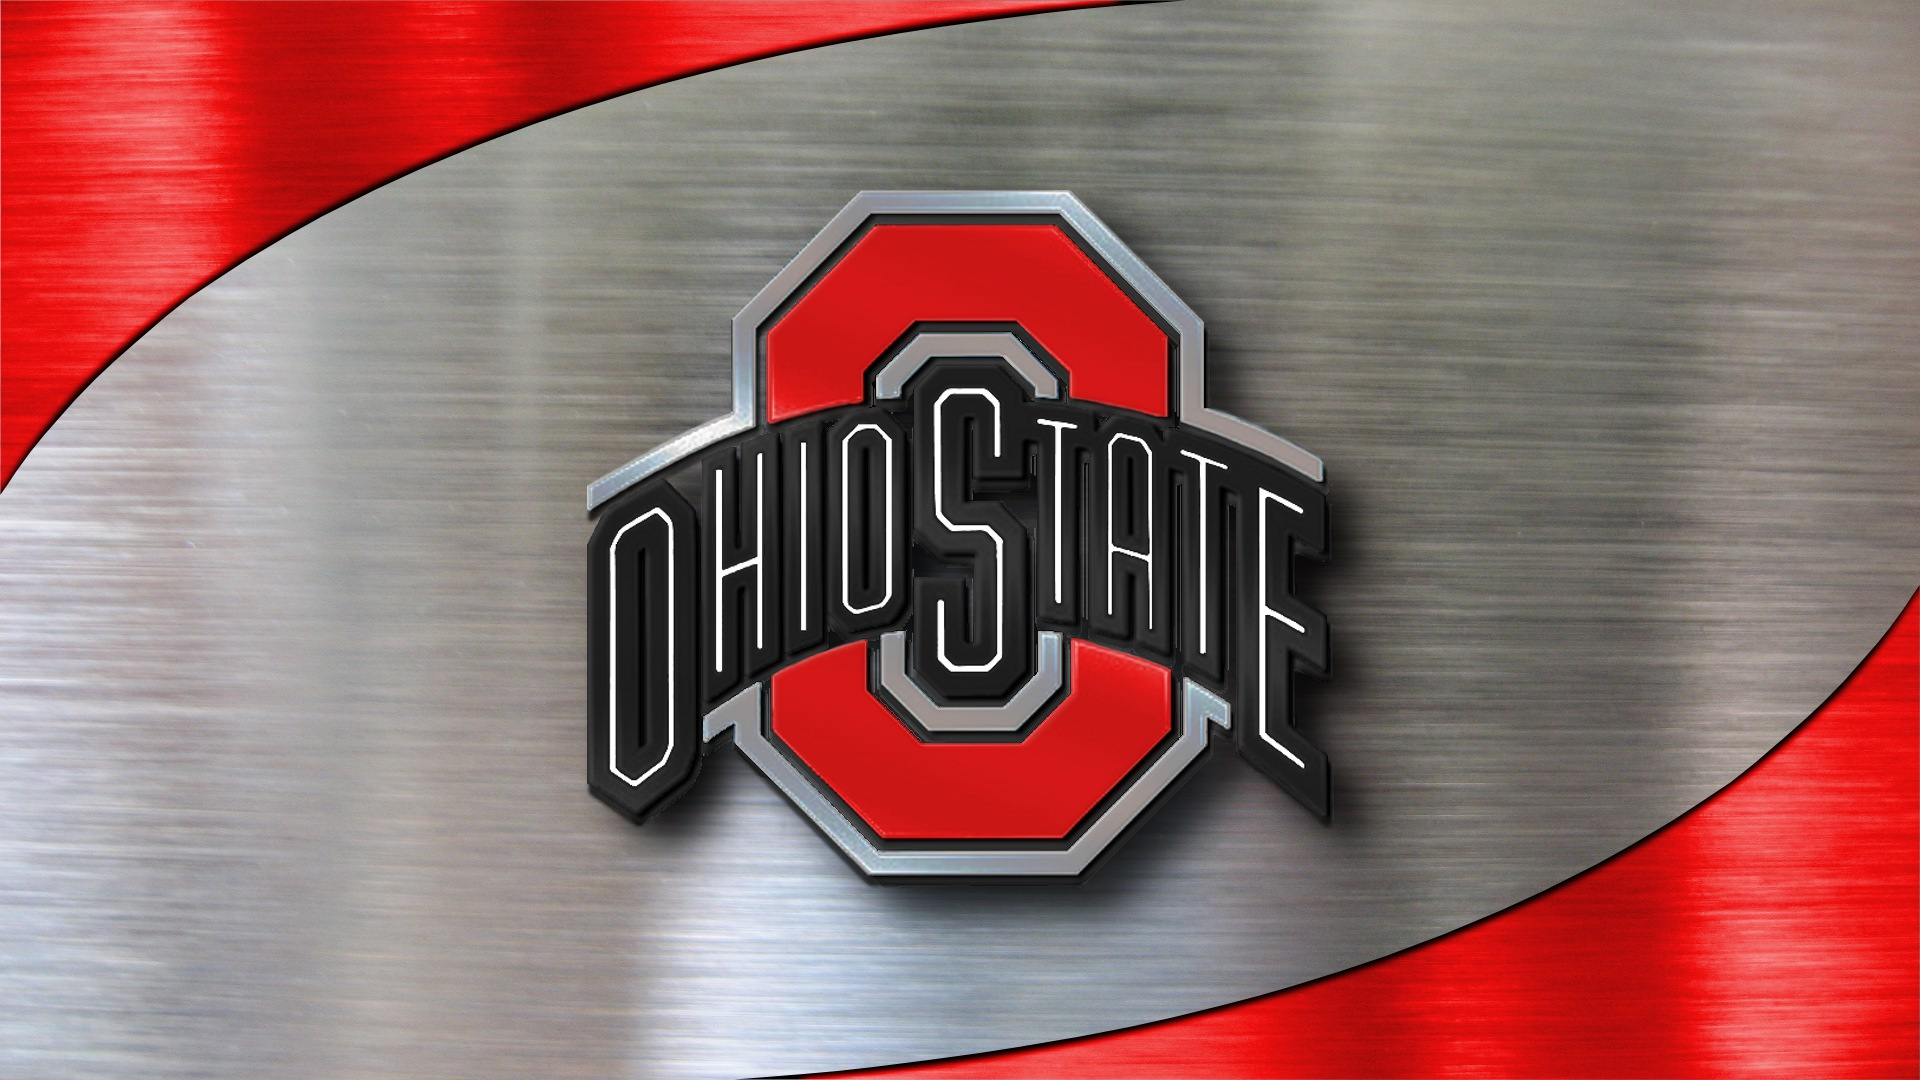 OSU Wallpaper 423   Ohio State Football Wallpaper 30925026 1920x1080